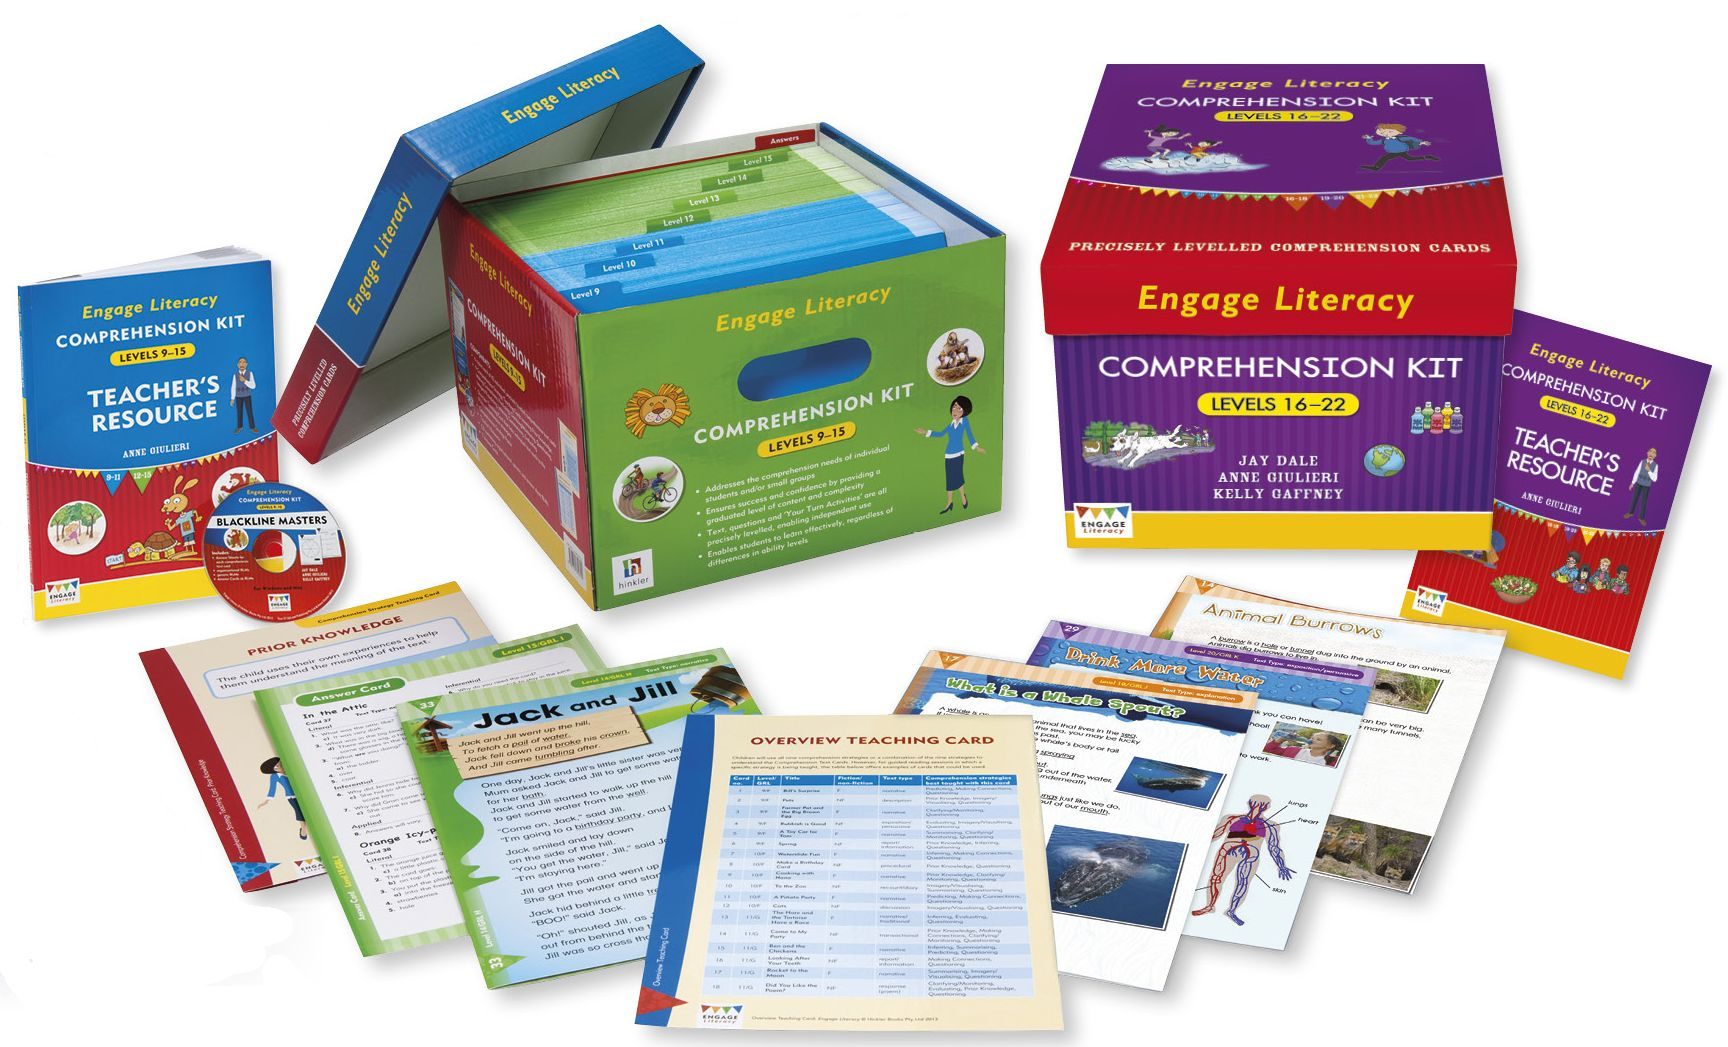 Engage Comprehension kit 16 22